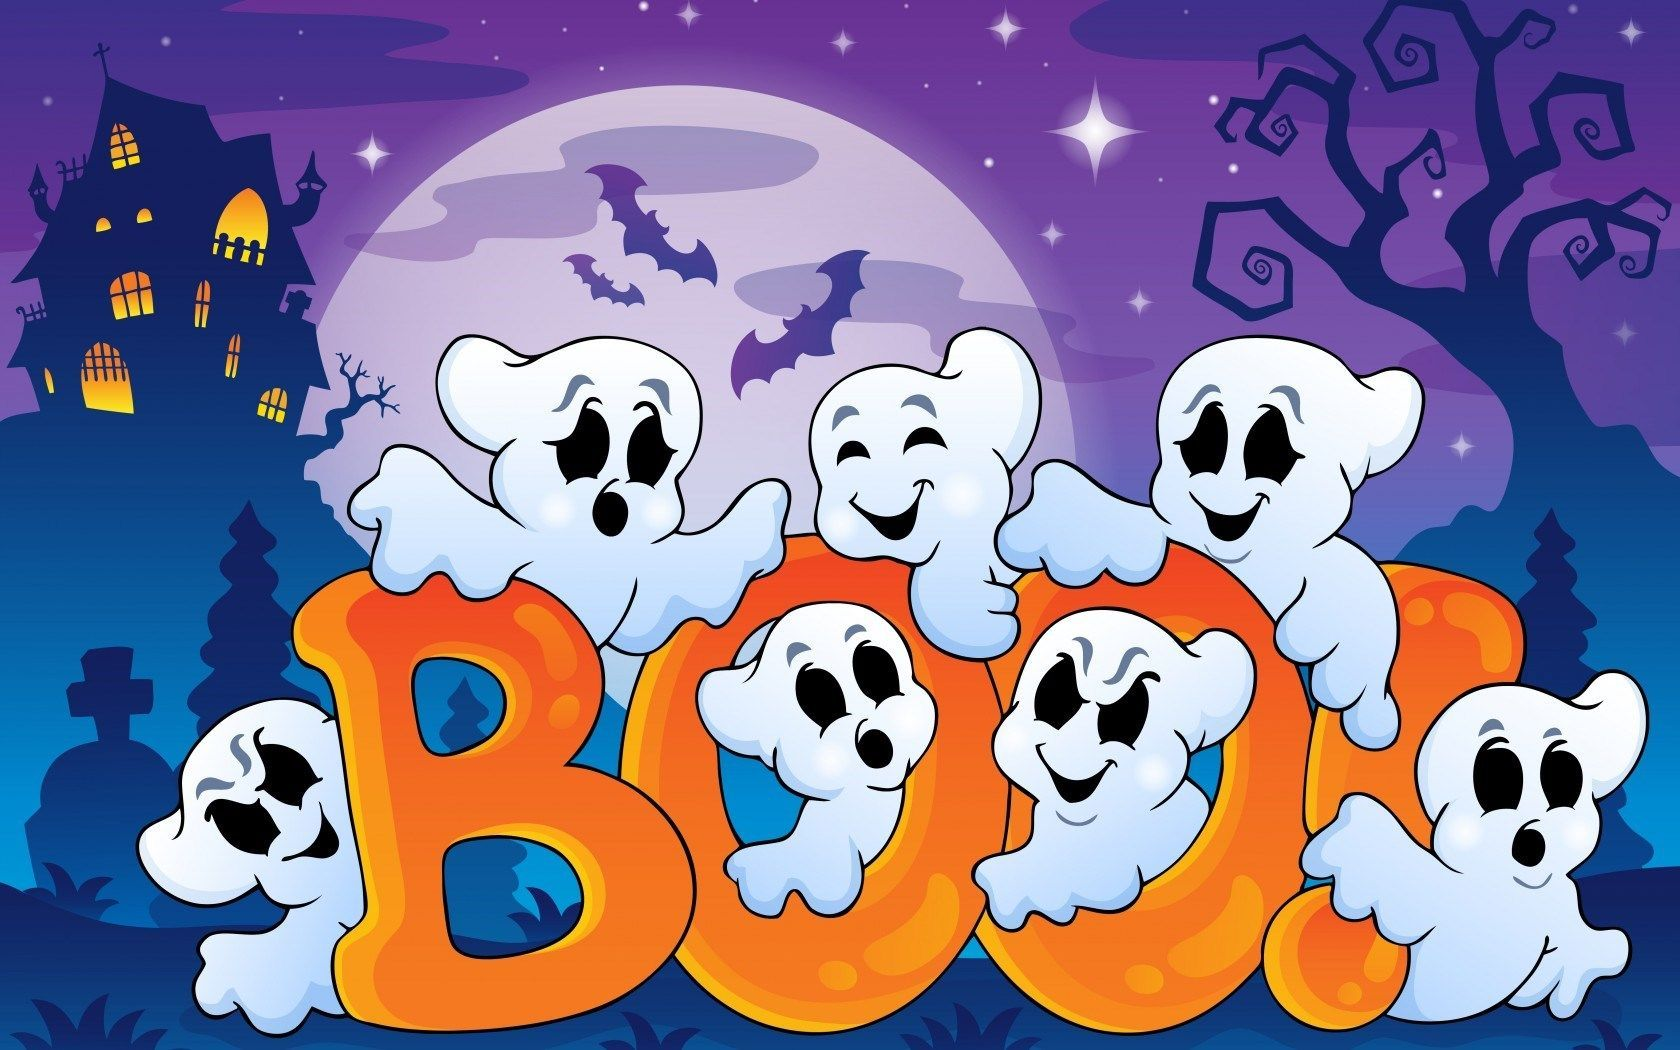 Cute Halloween Wallpaper Desktop Background Halloween Wallpaper Halloween Desktop Wallpaper Halloween Images